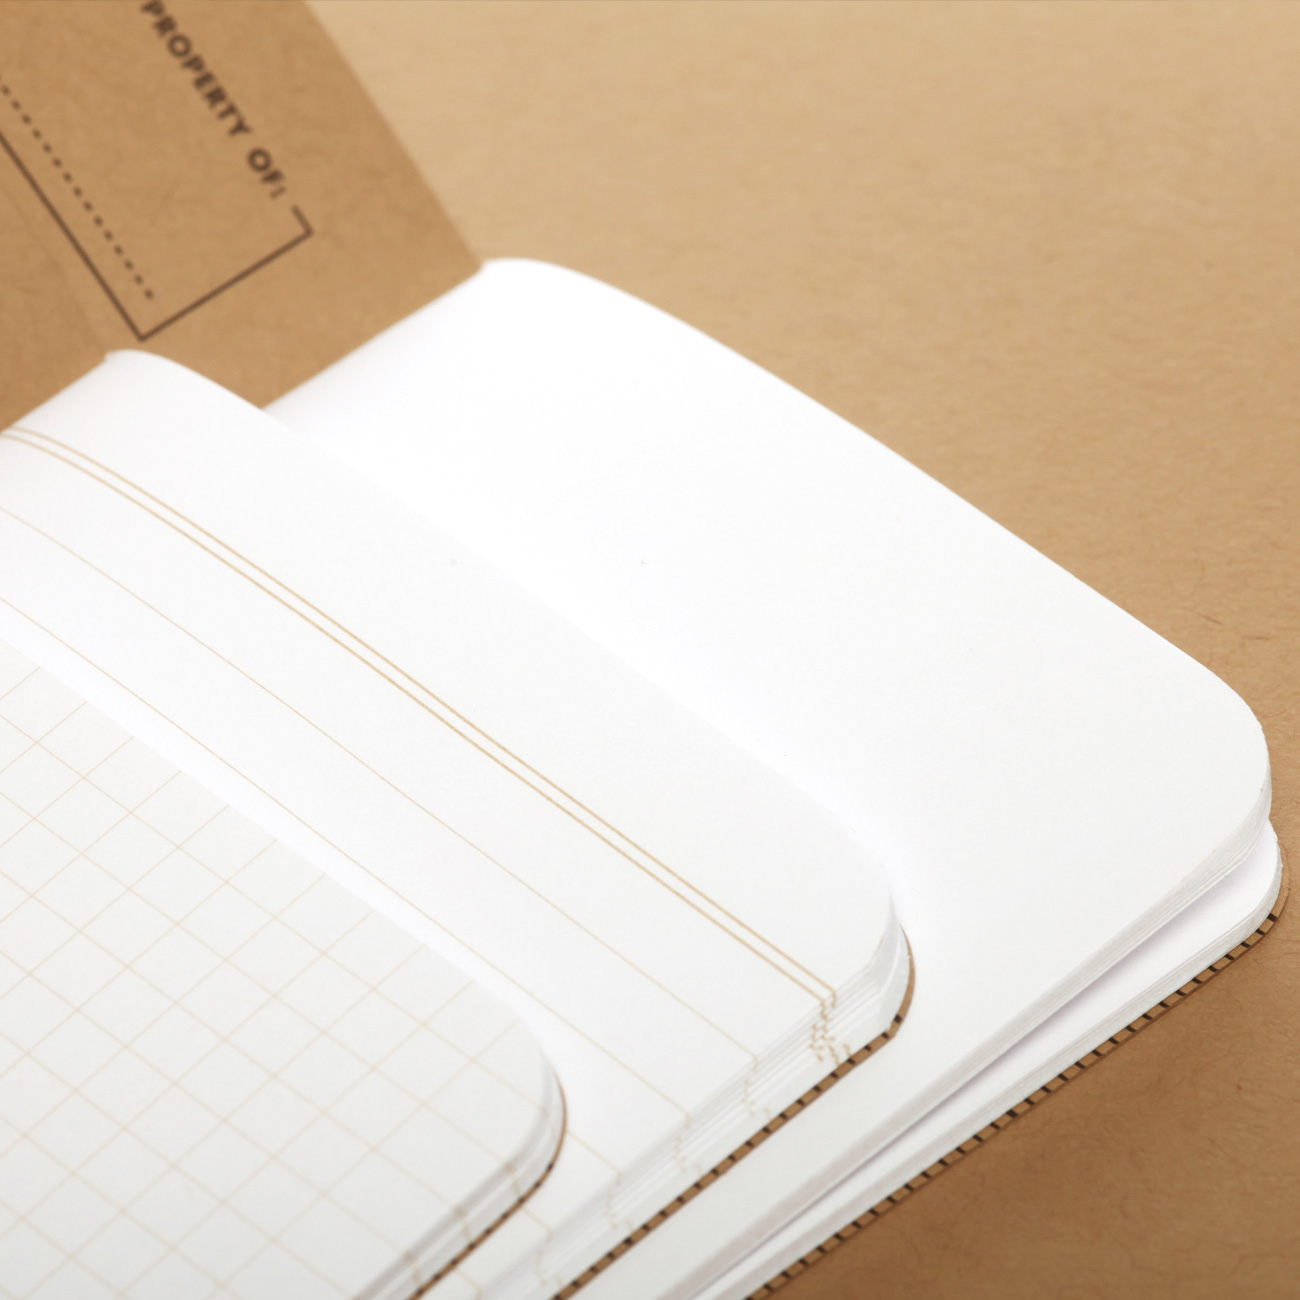 Field Notes, Notizhefte, Original, offene Hefte